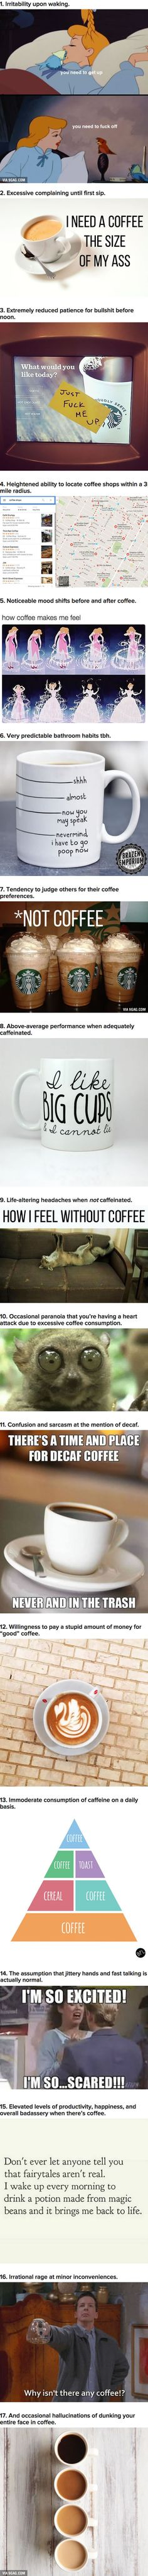 17 Symptoms You Have Experienced If You Are A Coffee Addict